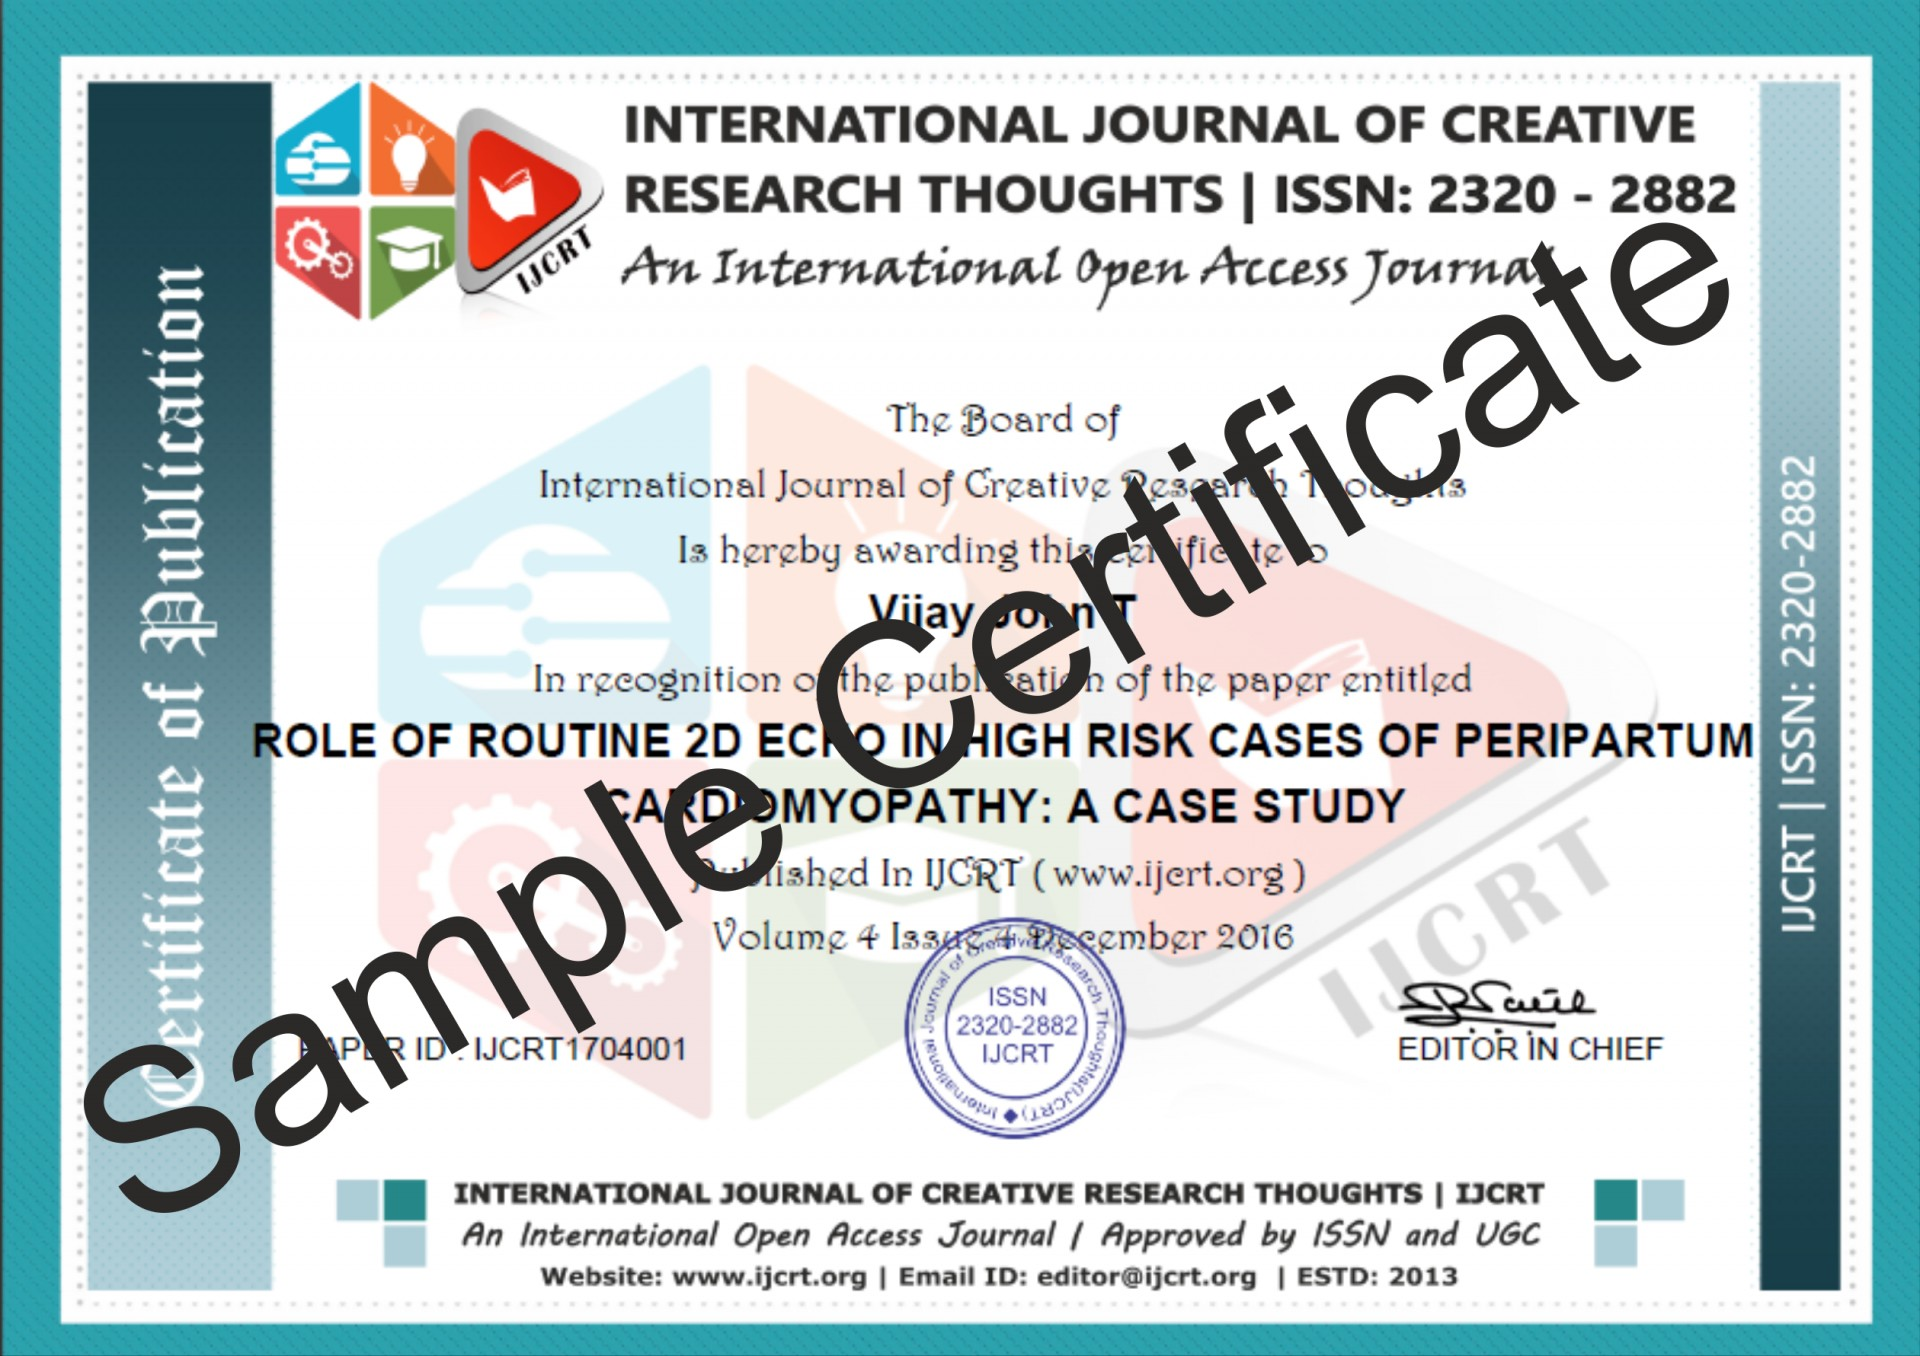 006 How To Publish Research Paper In International Journal Free Pdf Sample Certificate Unusual 1920